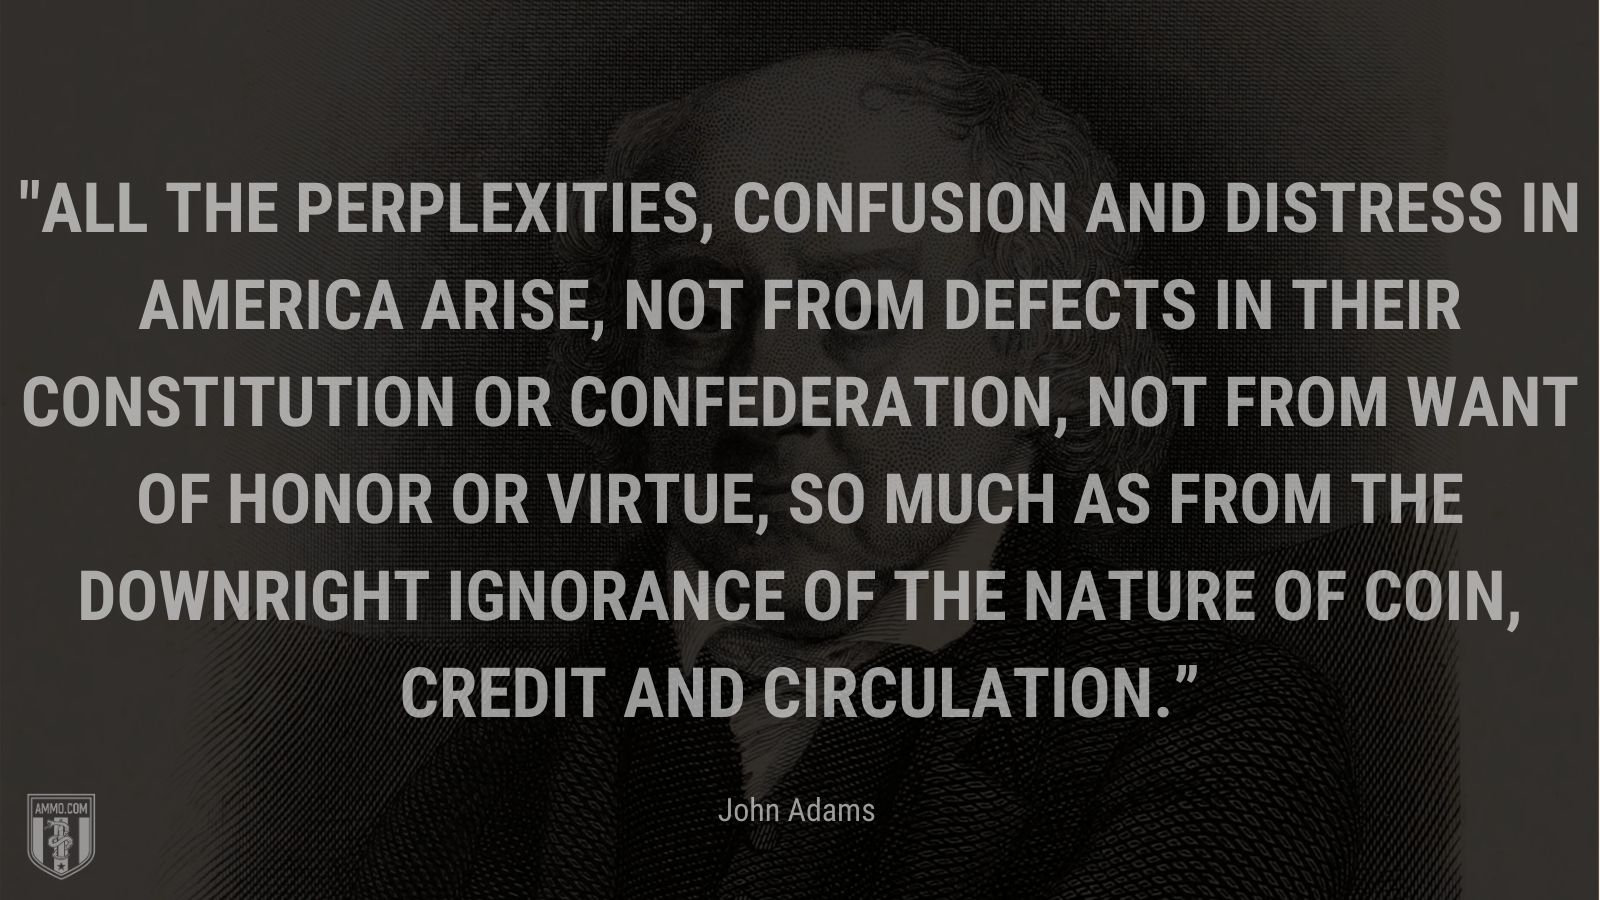 """""""All the perplexities, confusion and distress in America arise, not from defects in their Constitution or Confederation, not from want of honor or virtue, so much as from the downright ignorance of the nature of coin, credit and circulation."""" - John Adams"""